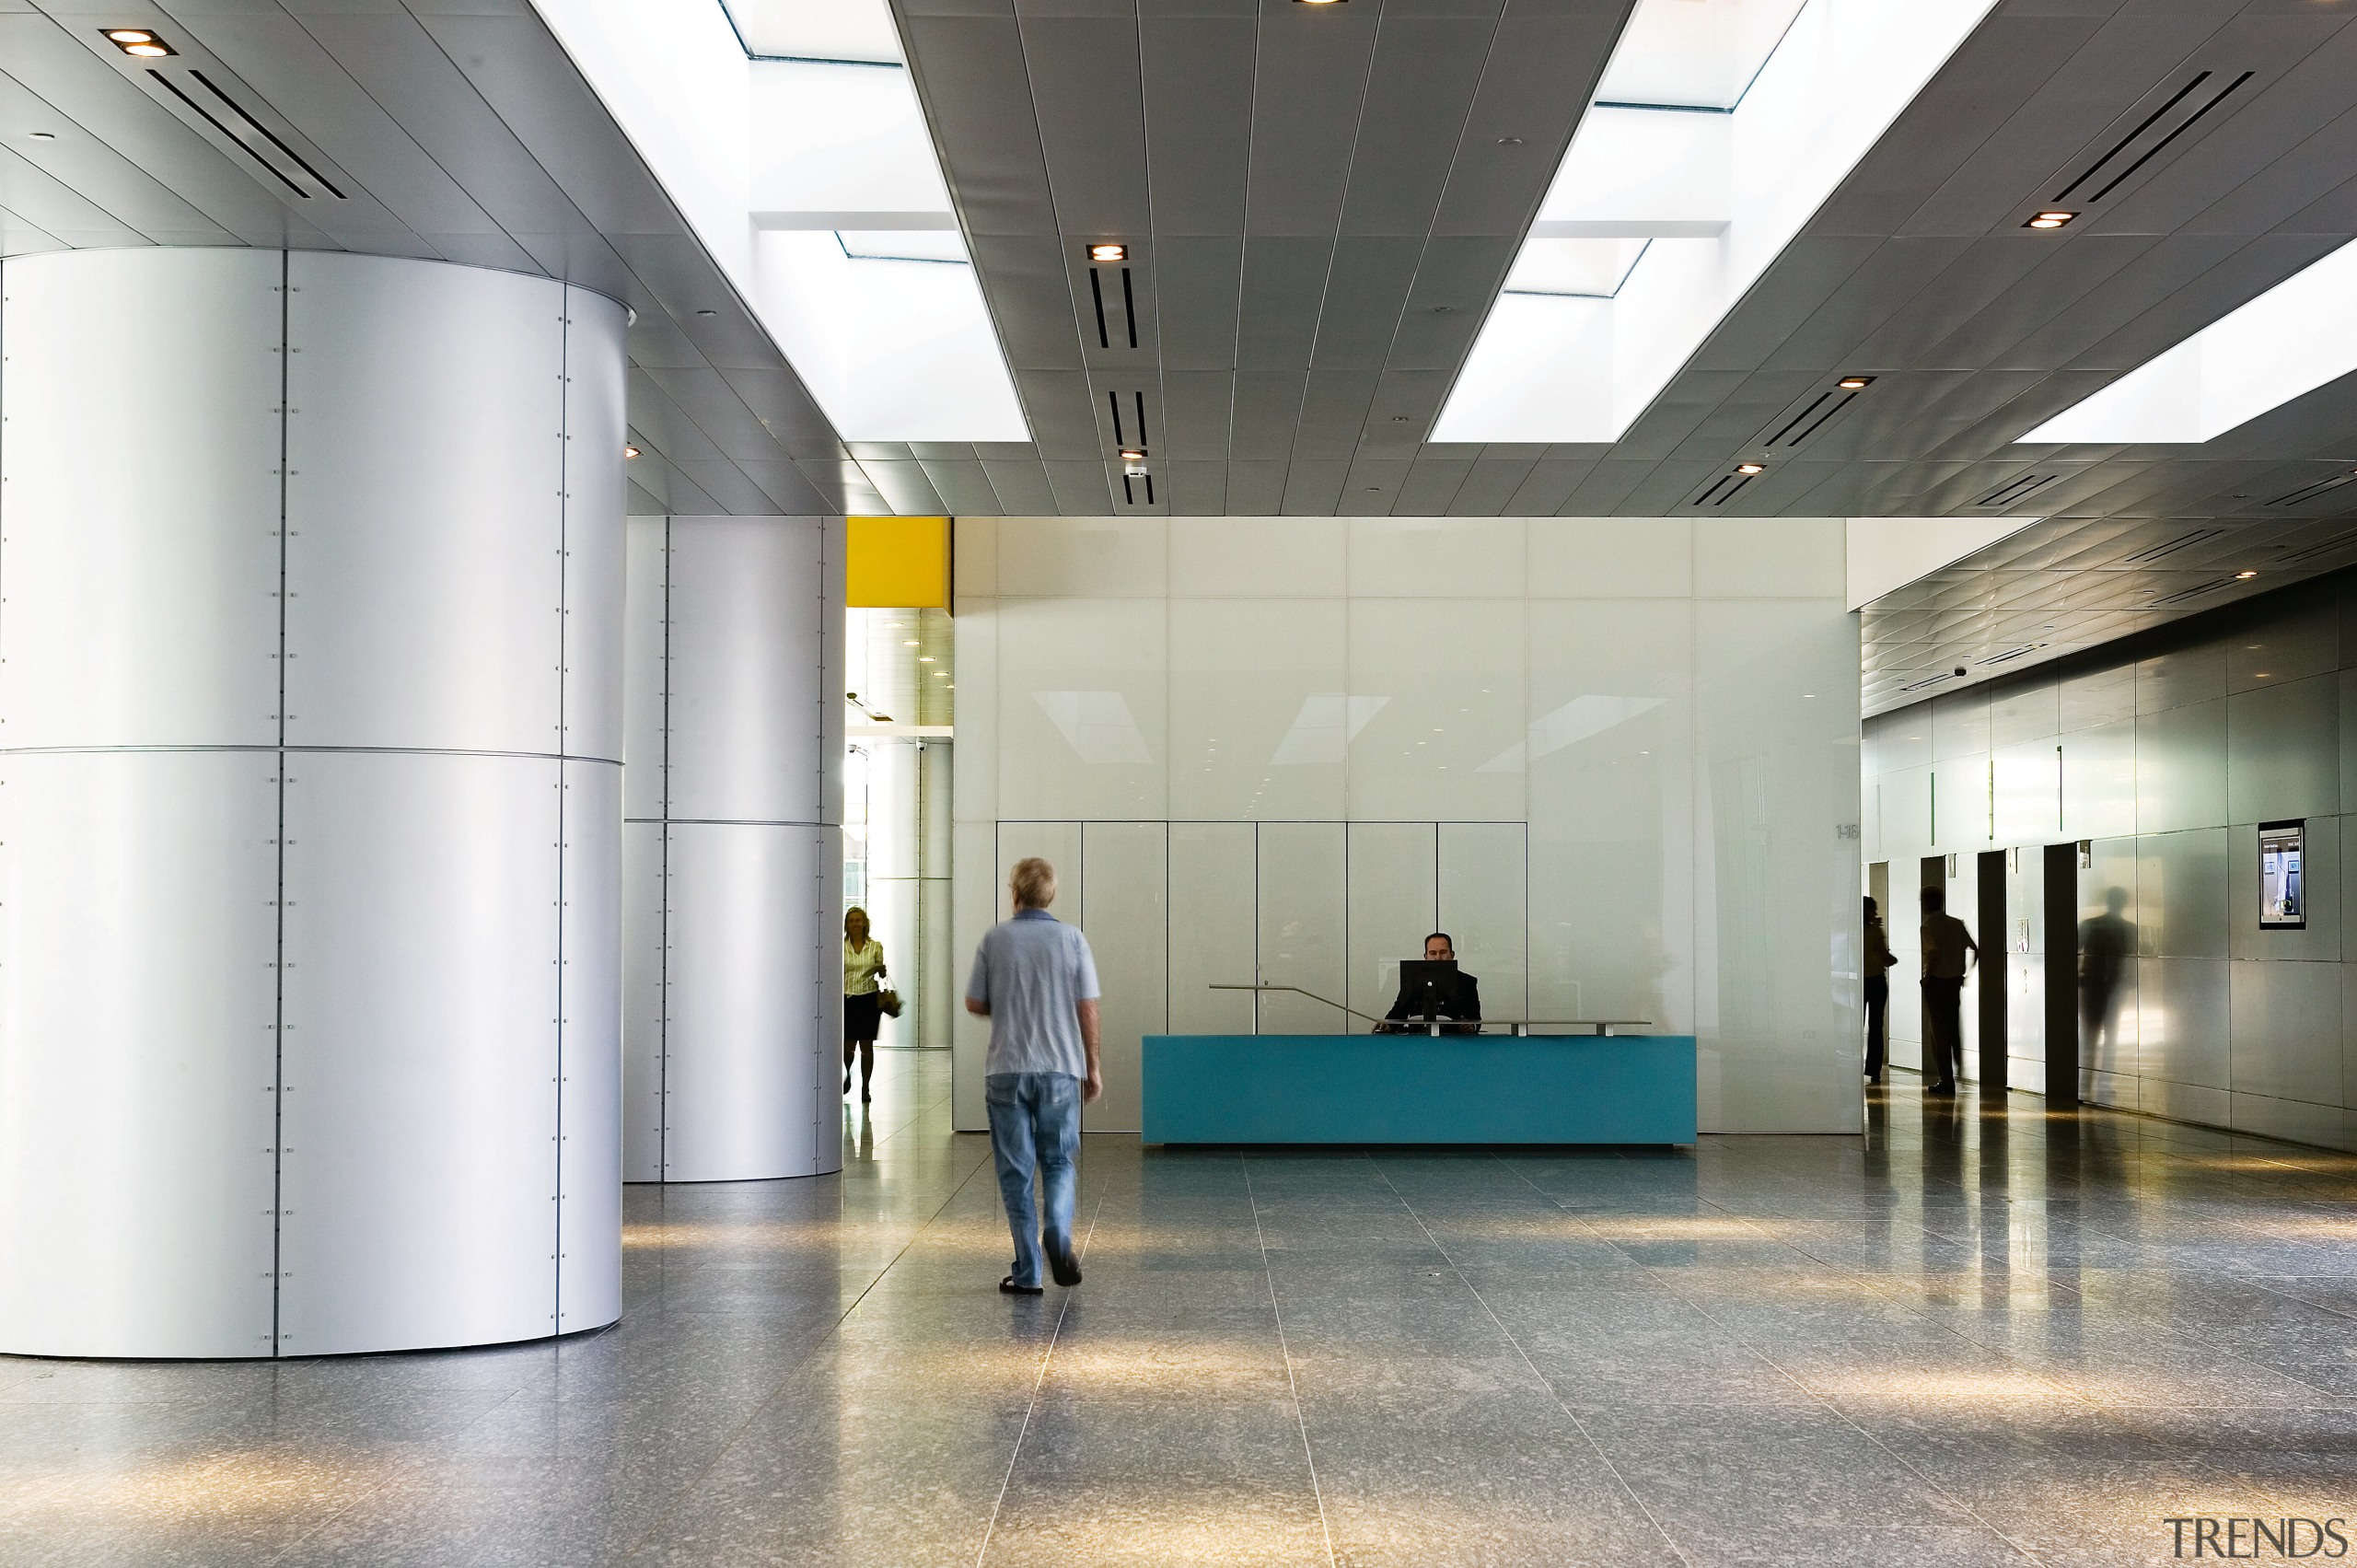 View of the foyer of the brisbane square architecture, product design, tourist attraction, gray, white